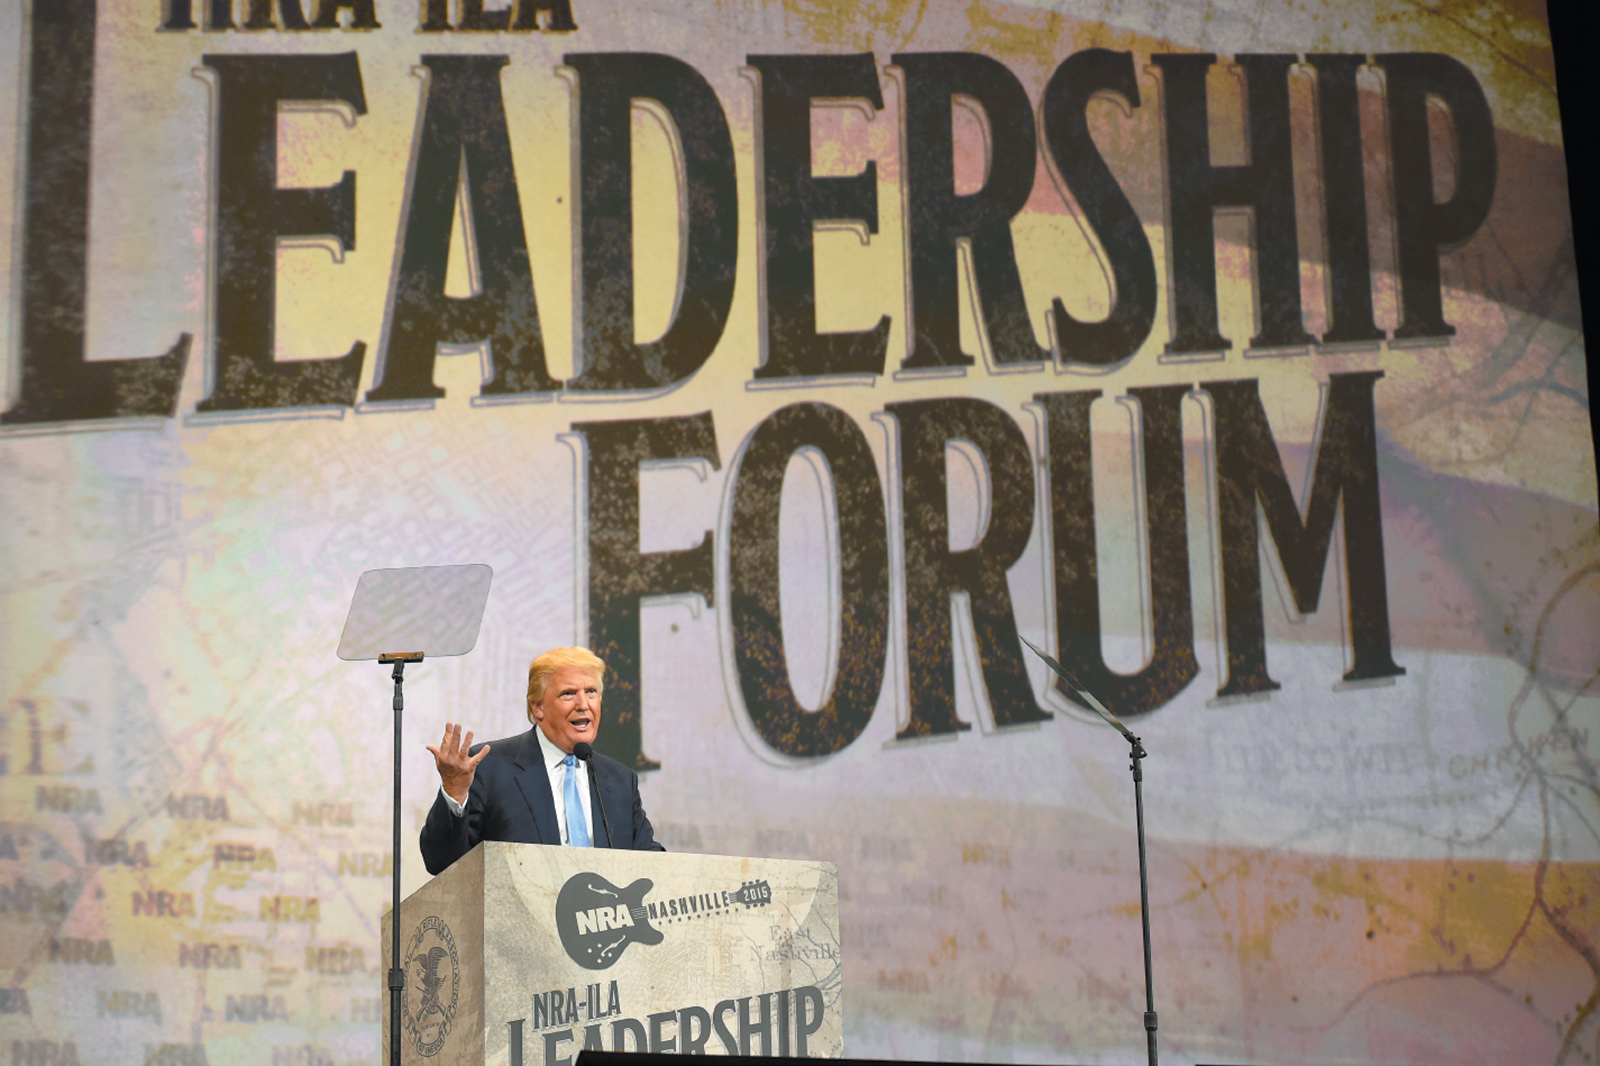 Donald Trump speaking at the National Rifle Association's annual meeting, Nashville, April 2015